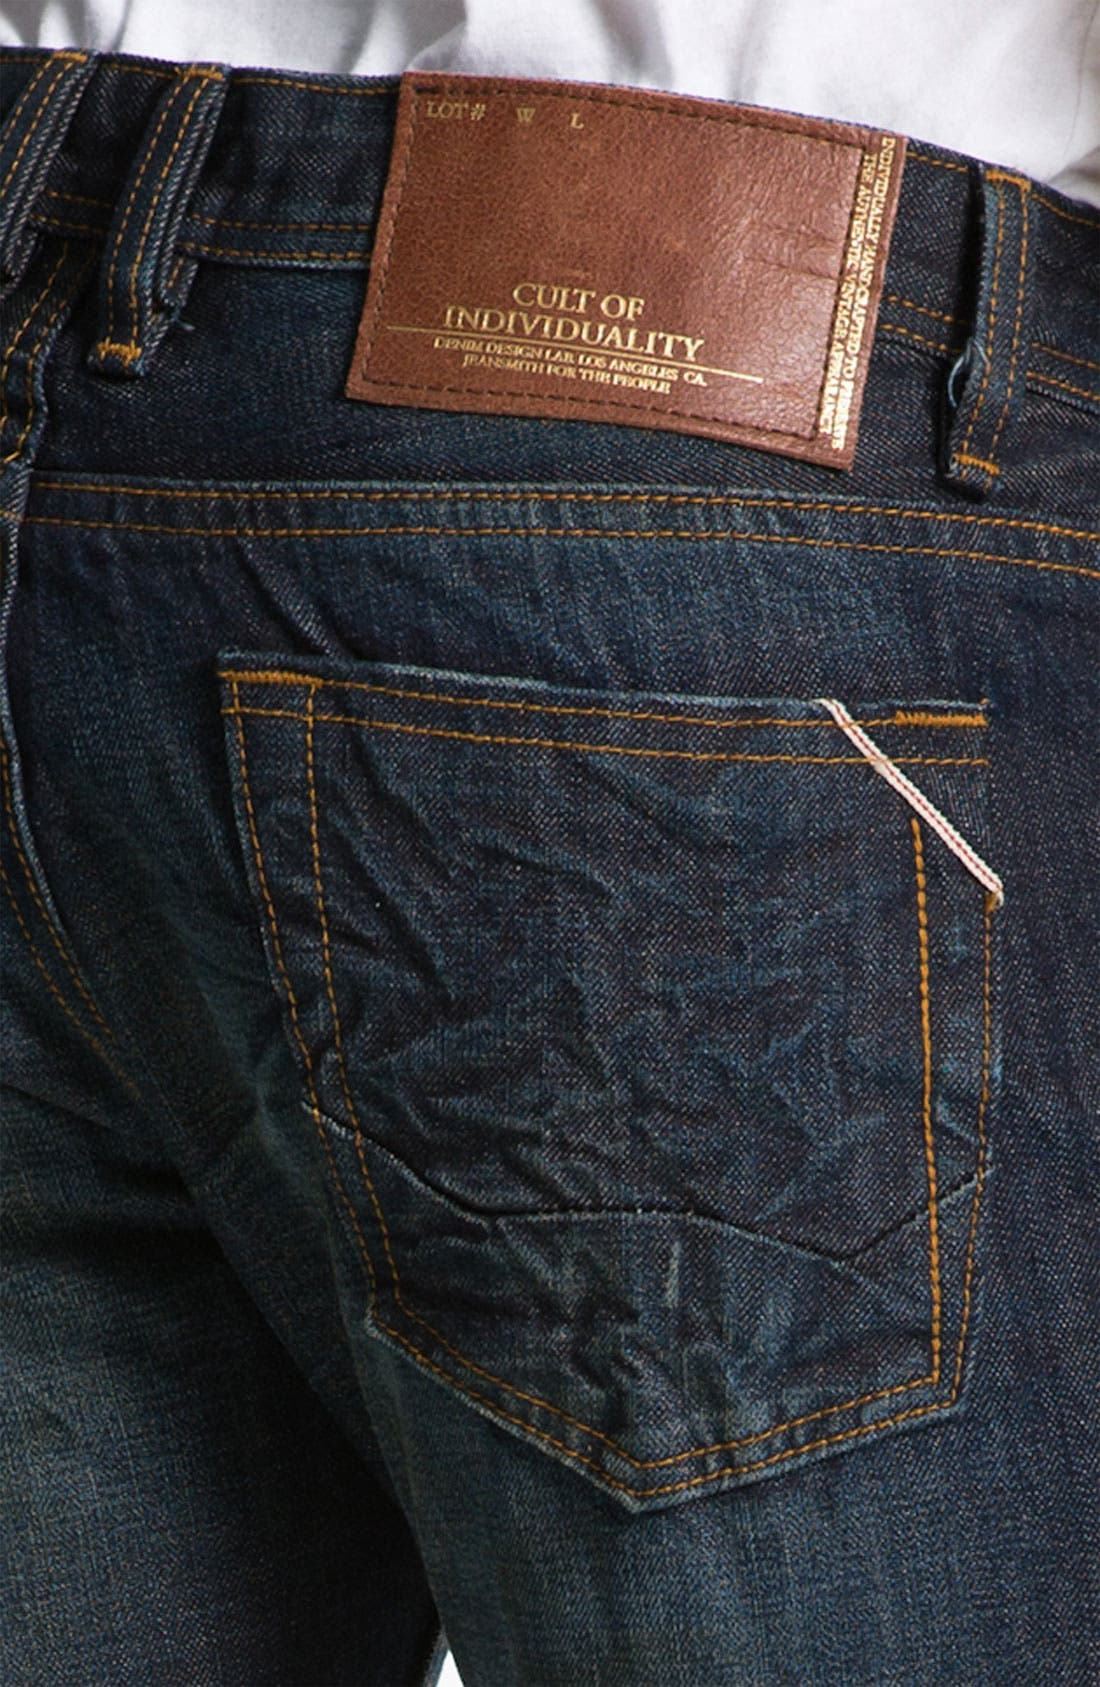 Alternate Image 4  - Cult of Individuality 'Revel' Straight Leg Jeans